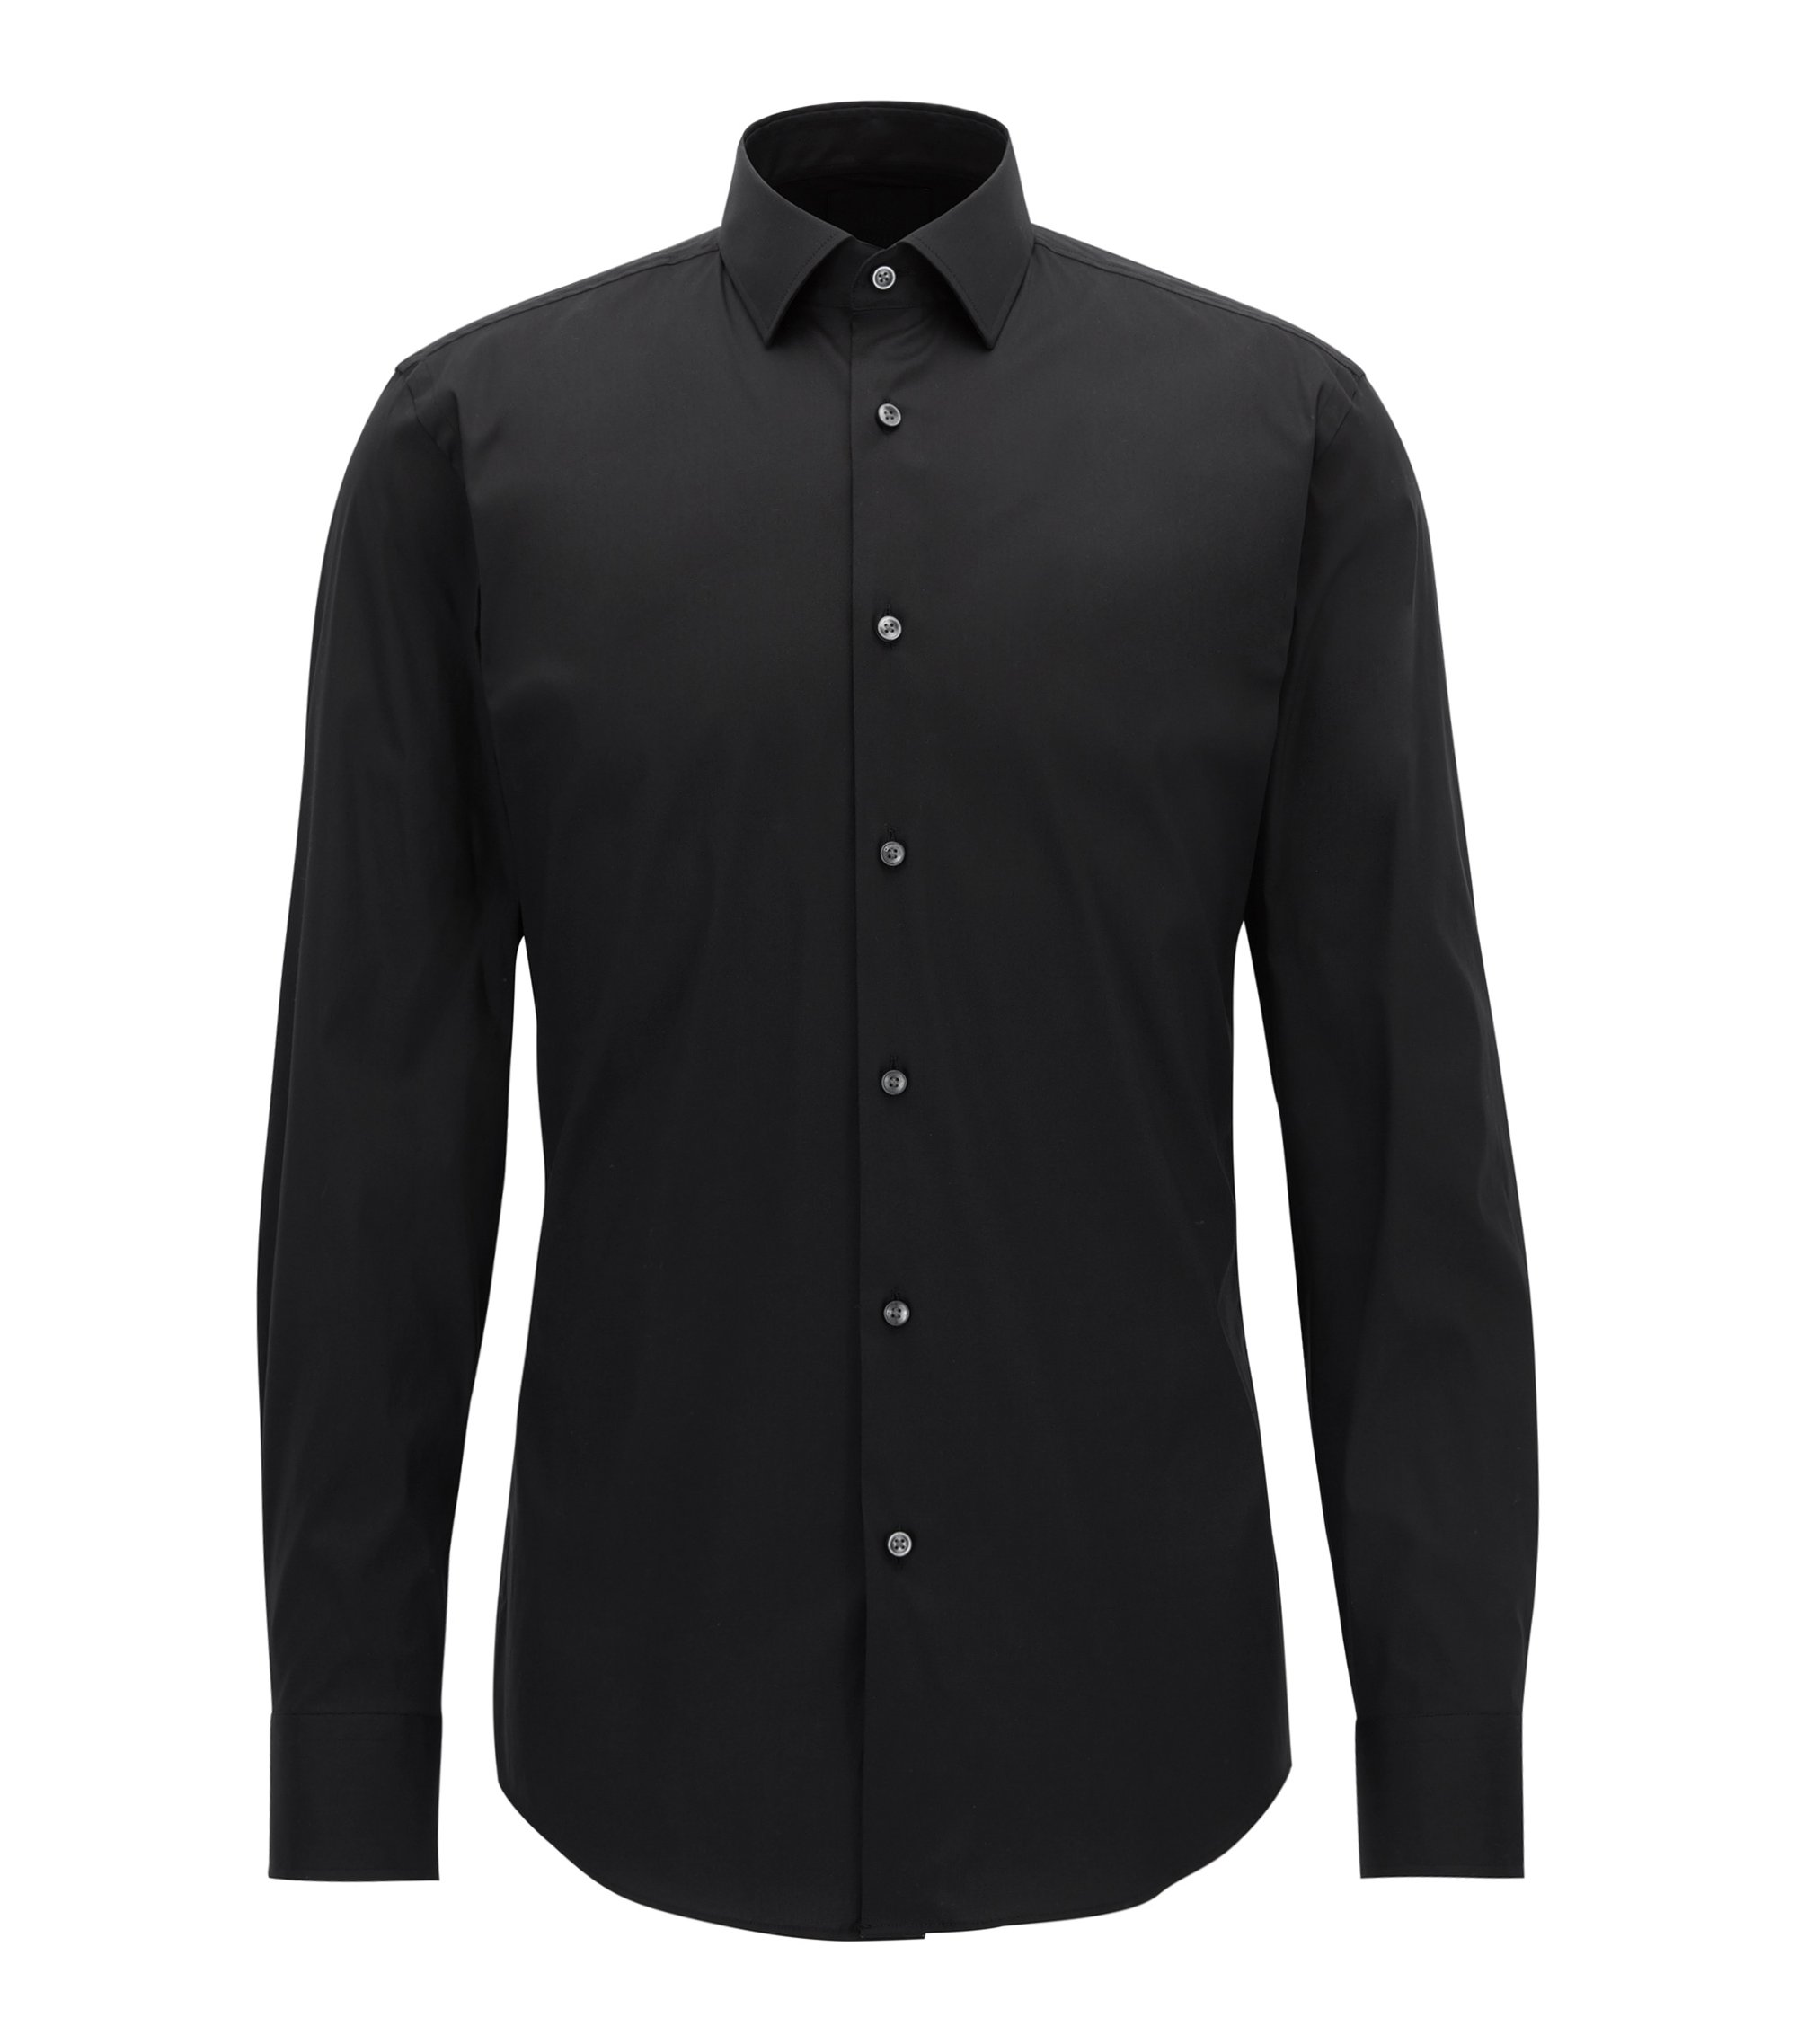 Slim-fit shirt in stretch cotton-blend poplin, Black